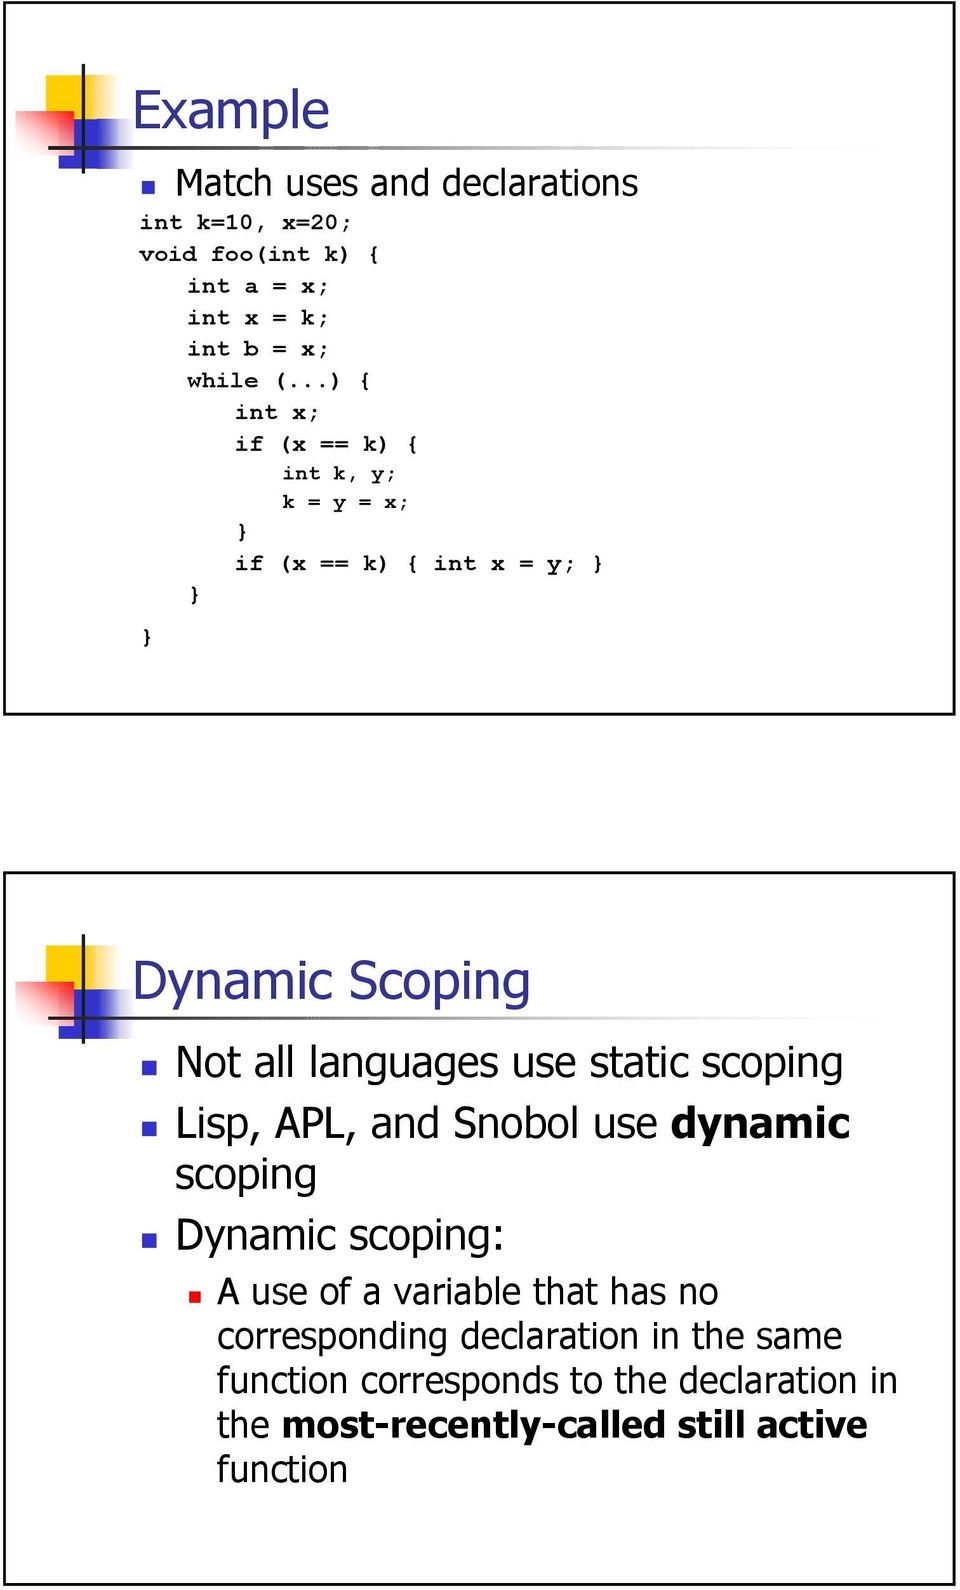 static scoping Lisp, APL, and Snobol use dynamic scoping Dynamic scoping: A use of a variable that has no